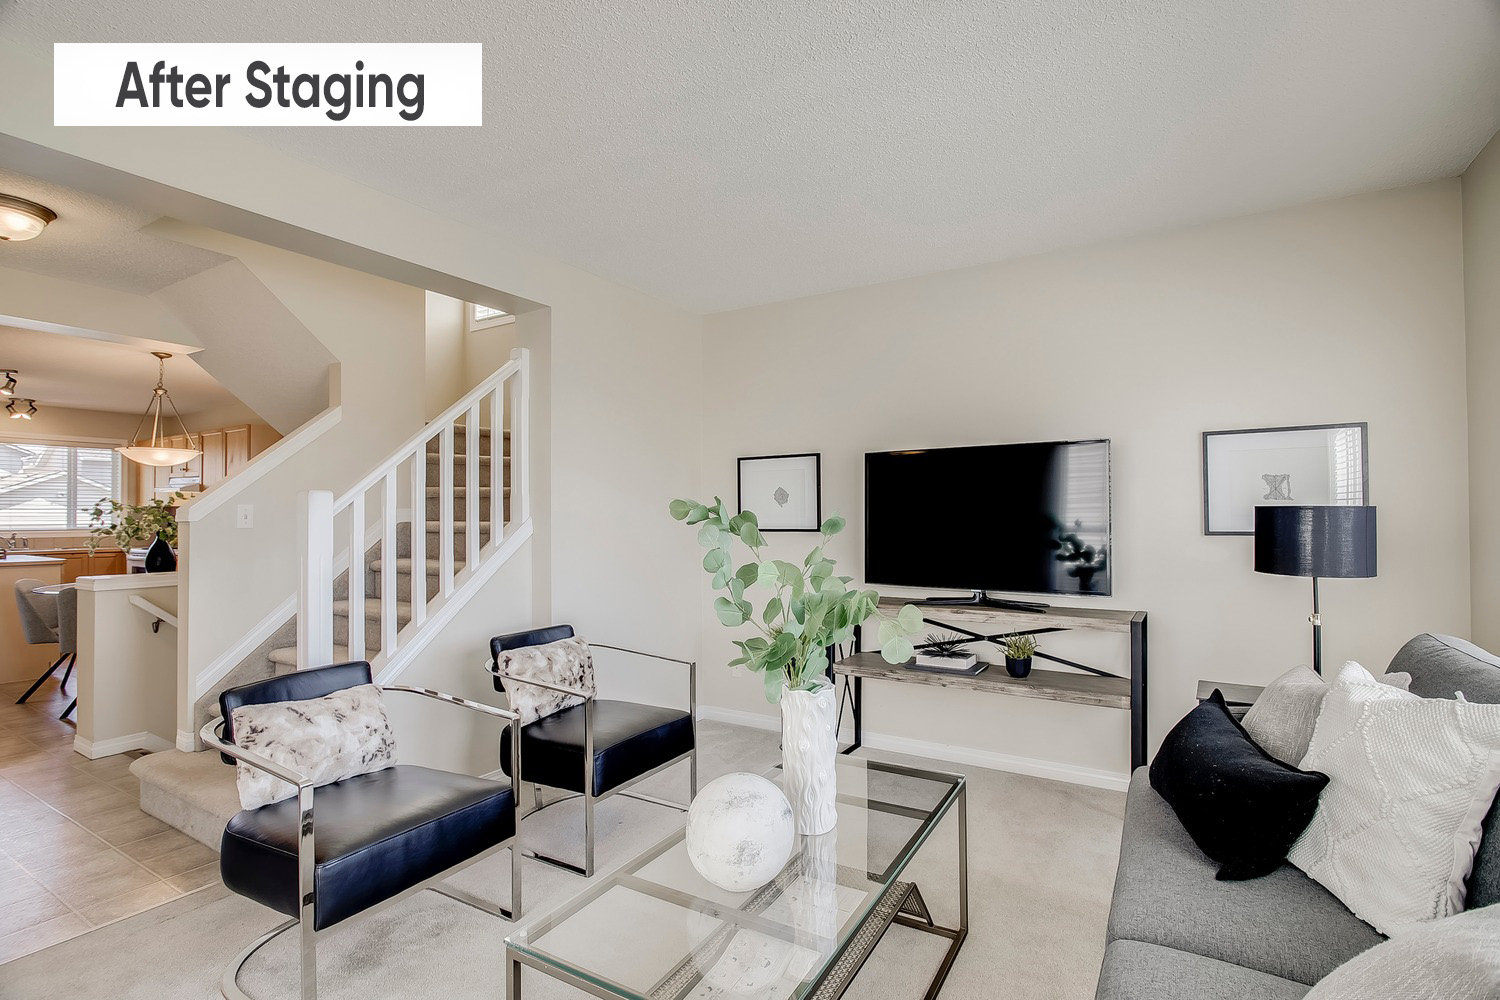 After staging a home.